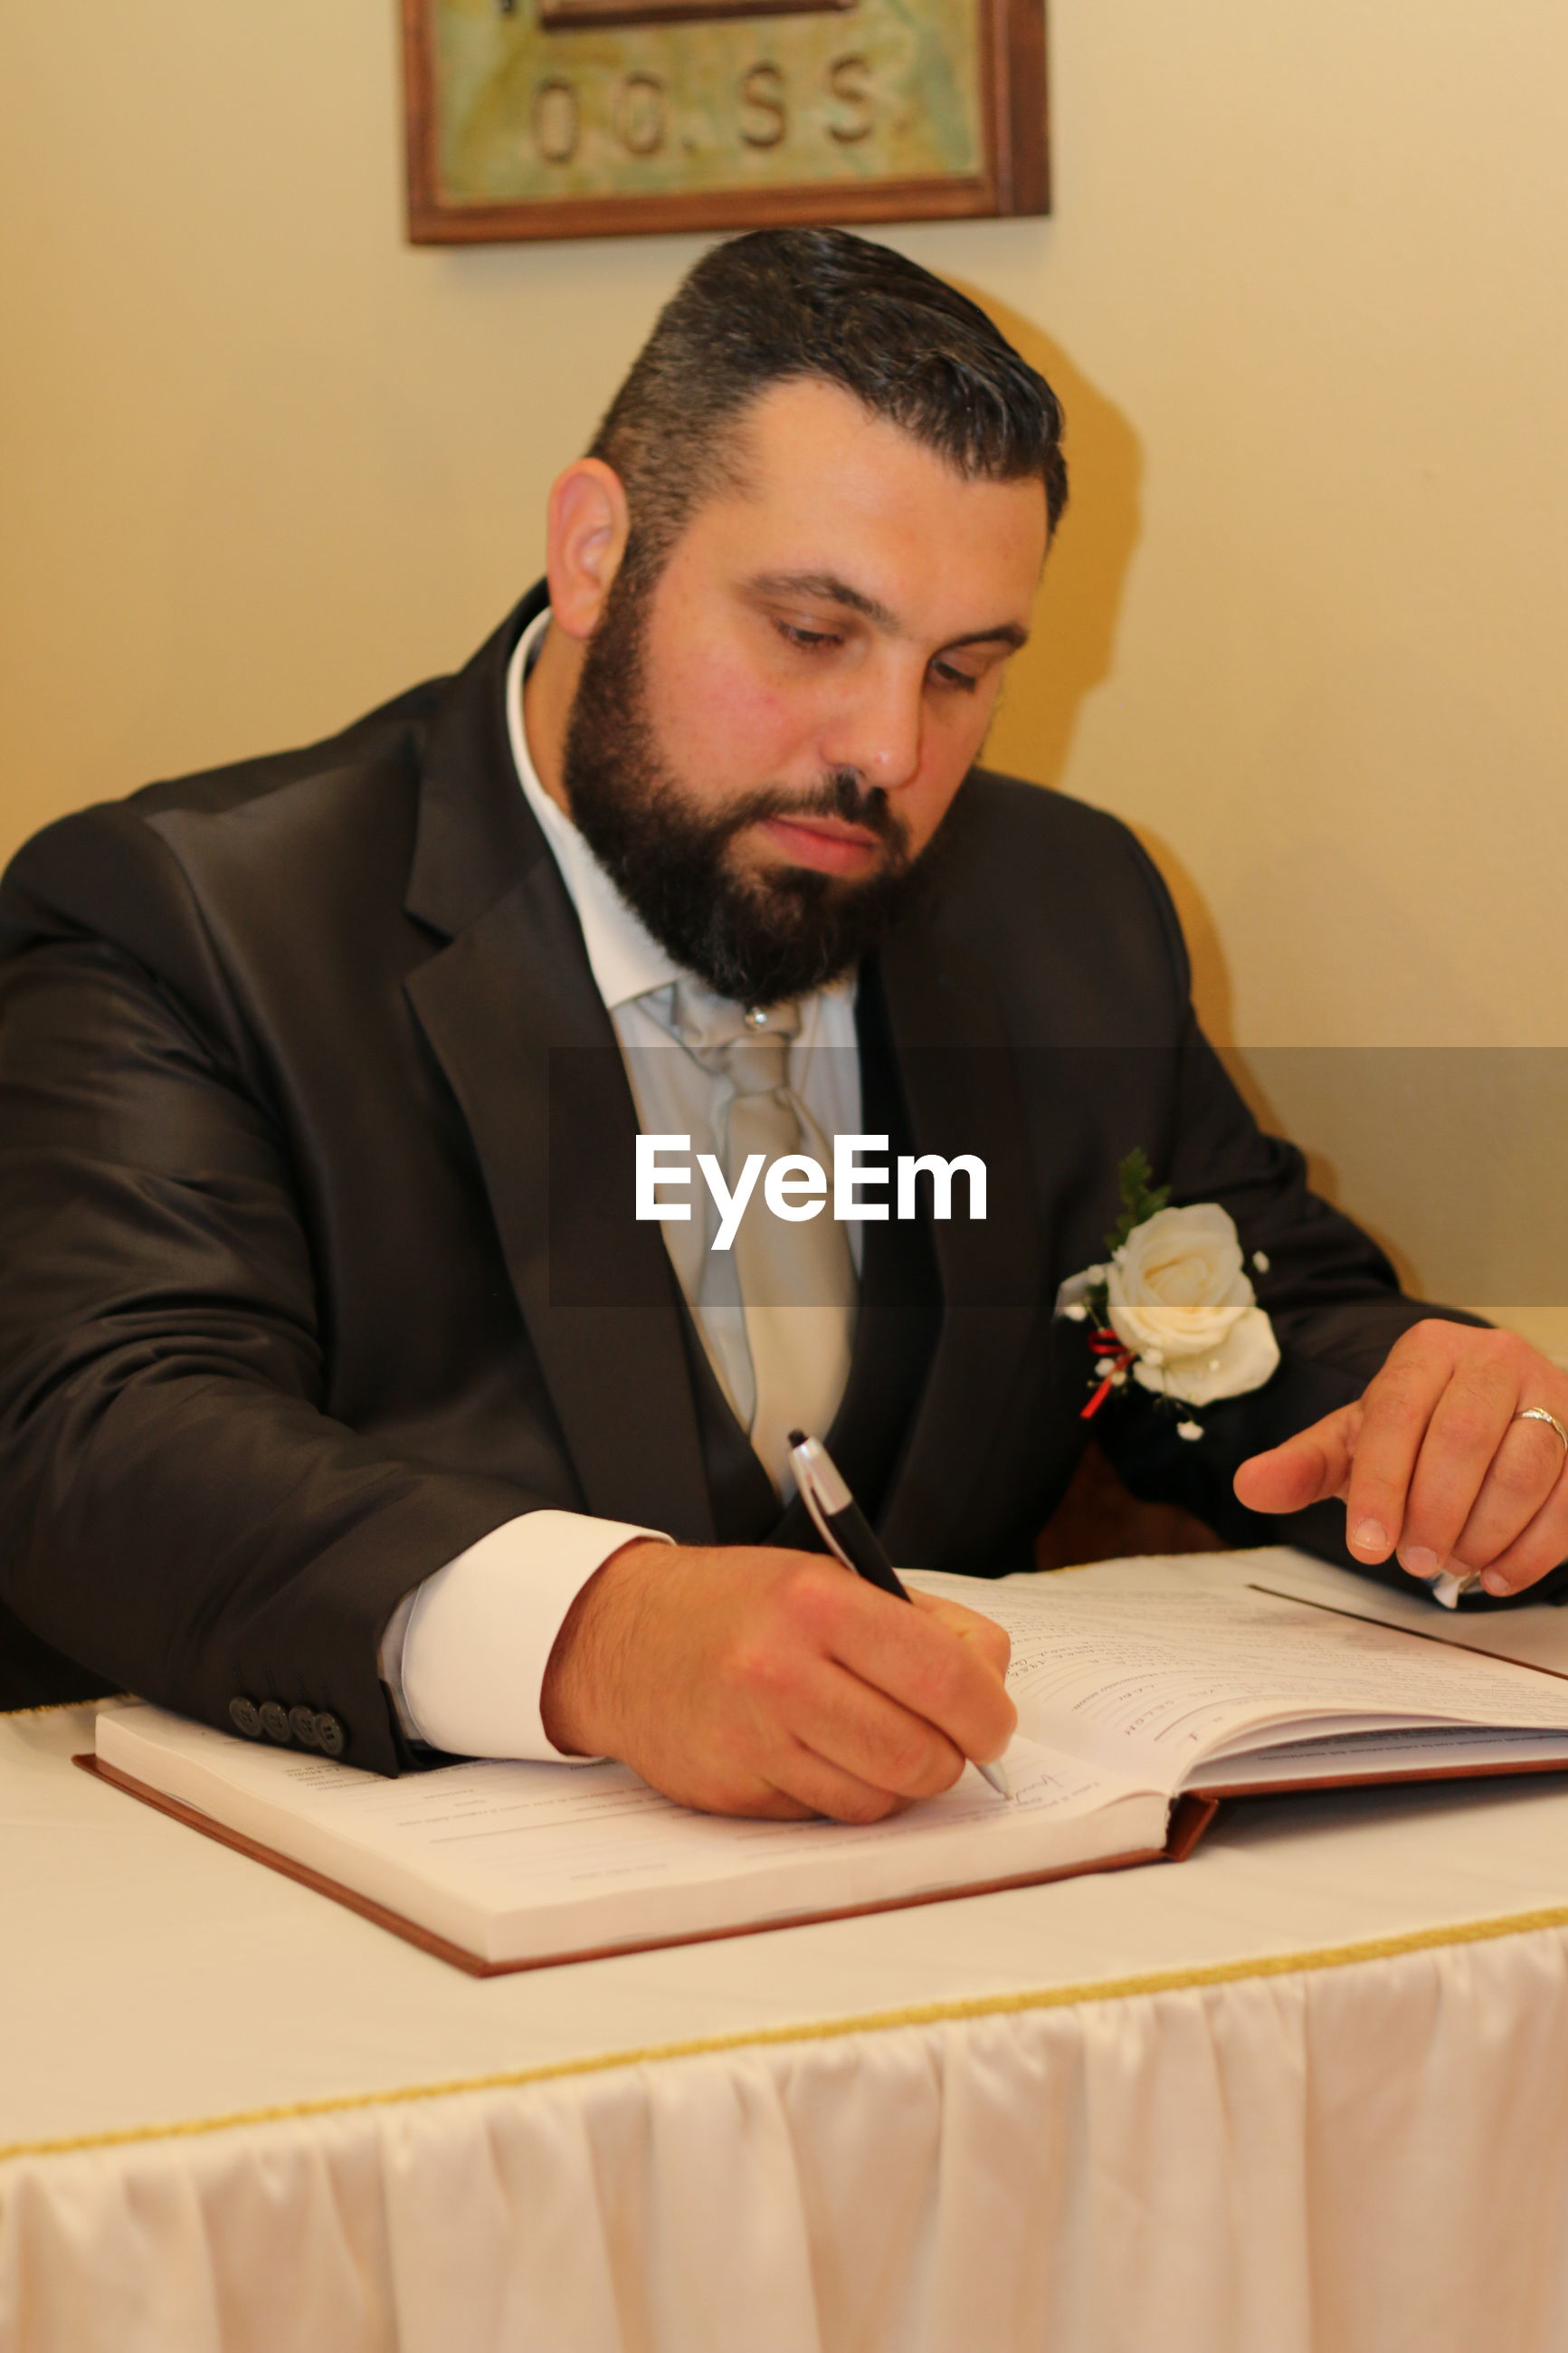 Groom writing in book while sitting at table